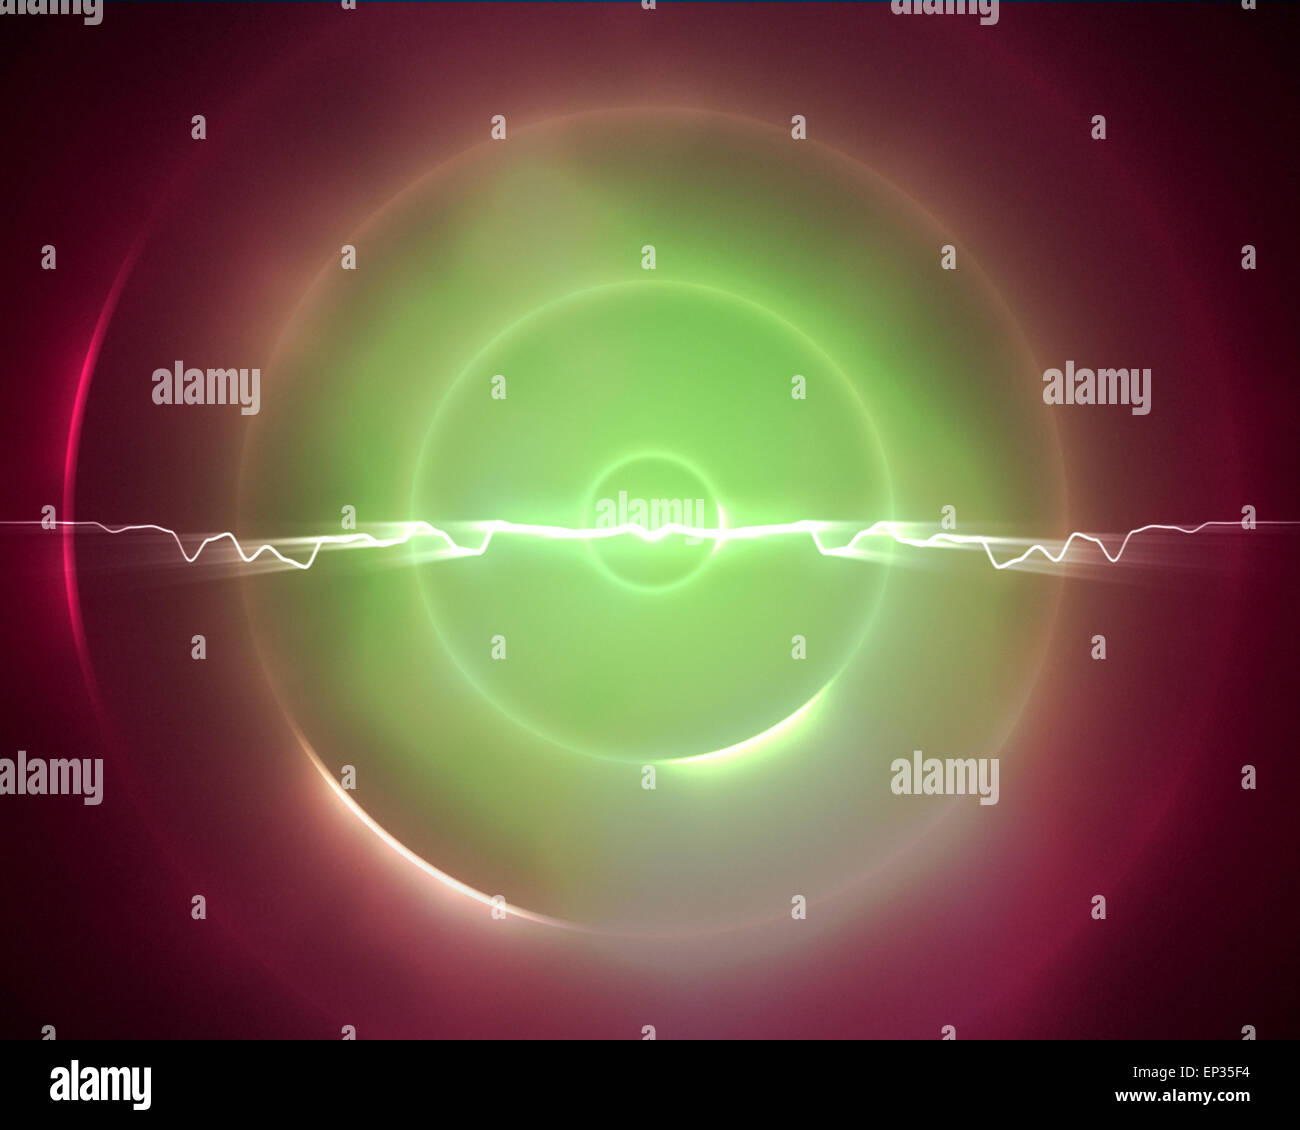 Green and pink circle with a lightning in the middle - Stock Image